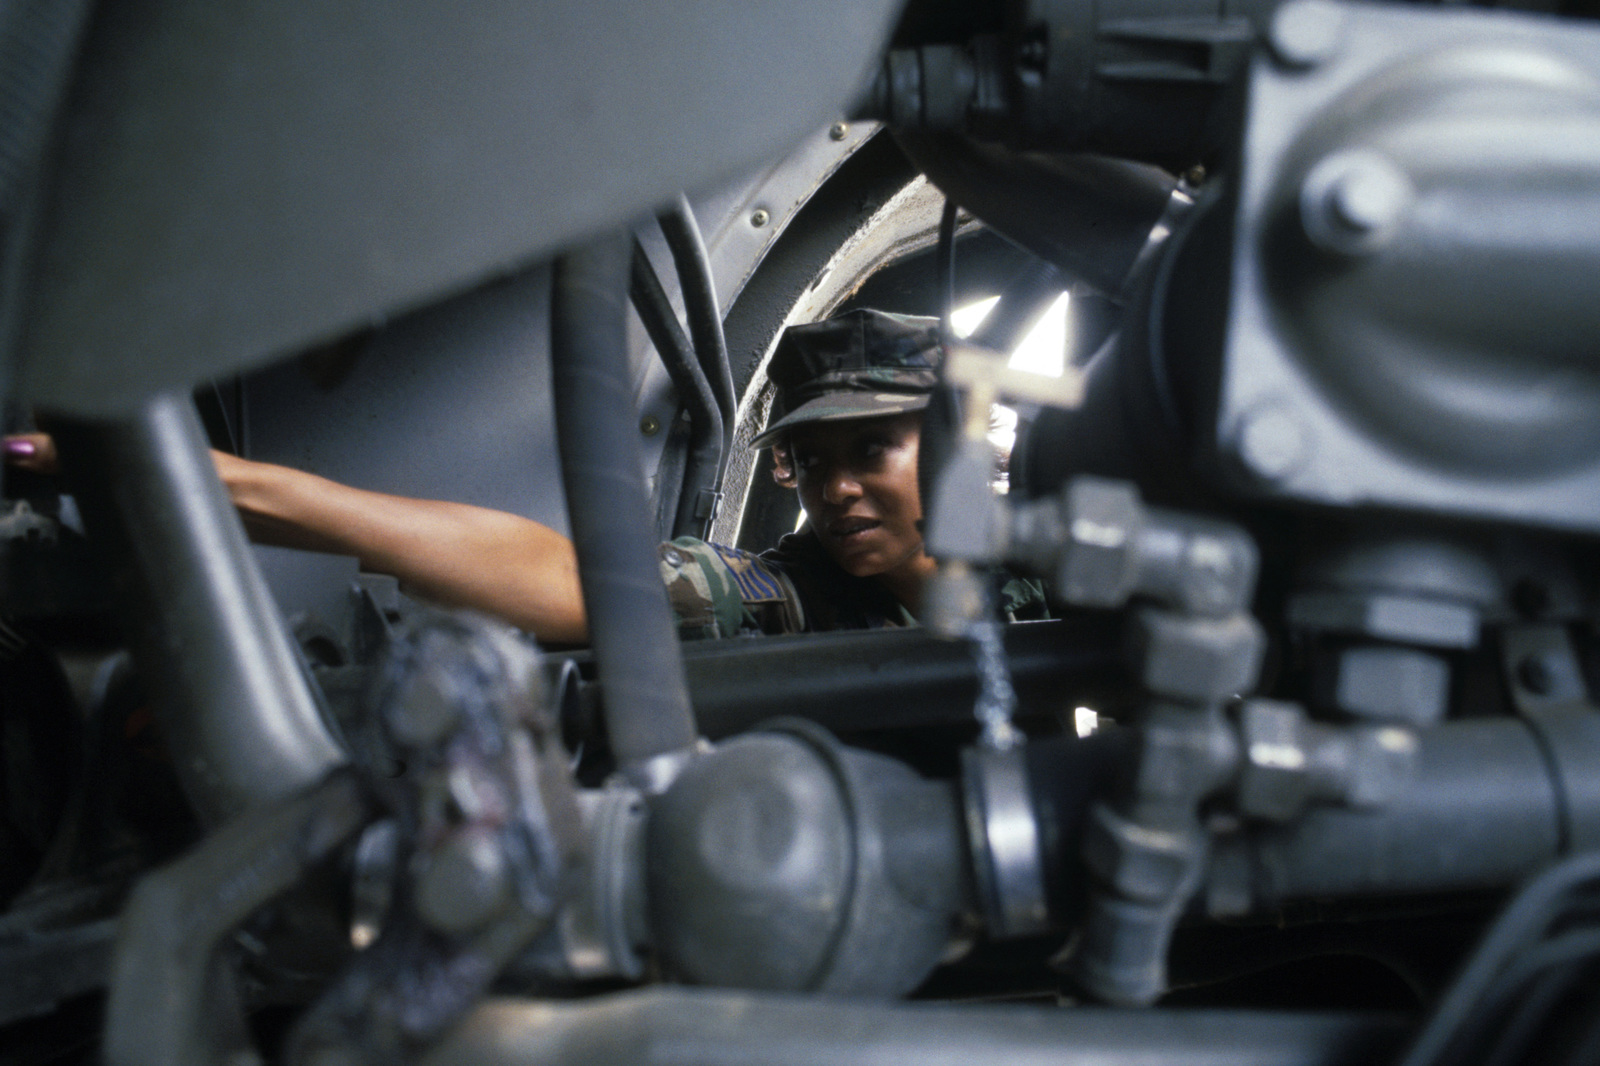 Technical Sergeant (TSGT) Gale Pafe, non-commissioned officer in charge of the dispersal curriculum development, 868th Tactical Missile Training Group, works on a MAN truck engine